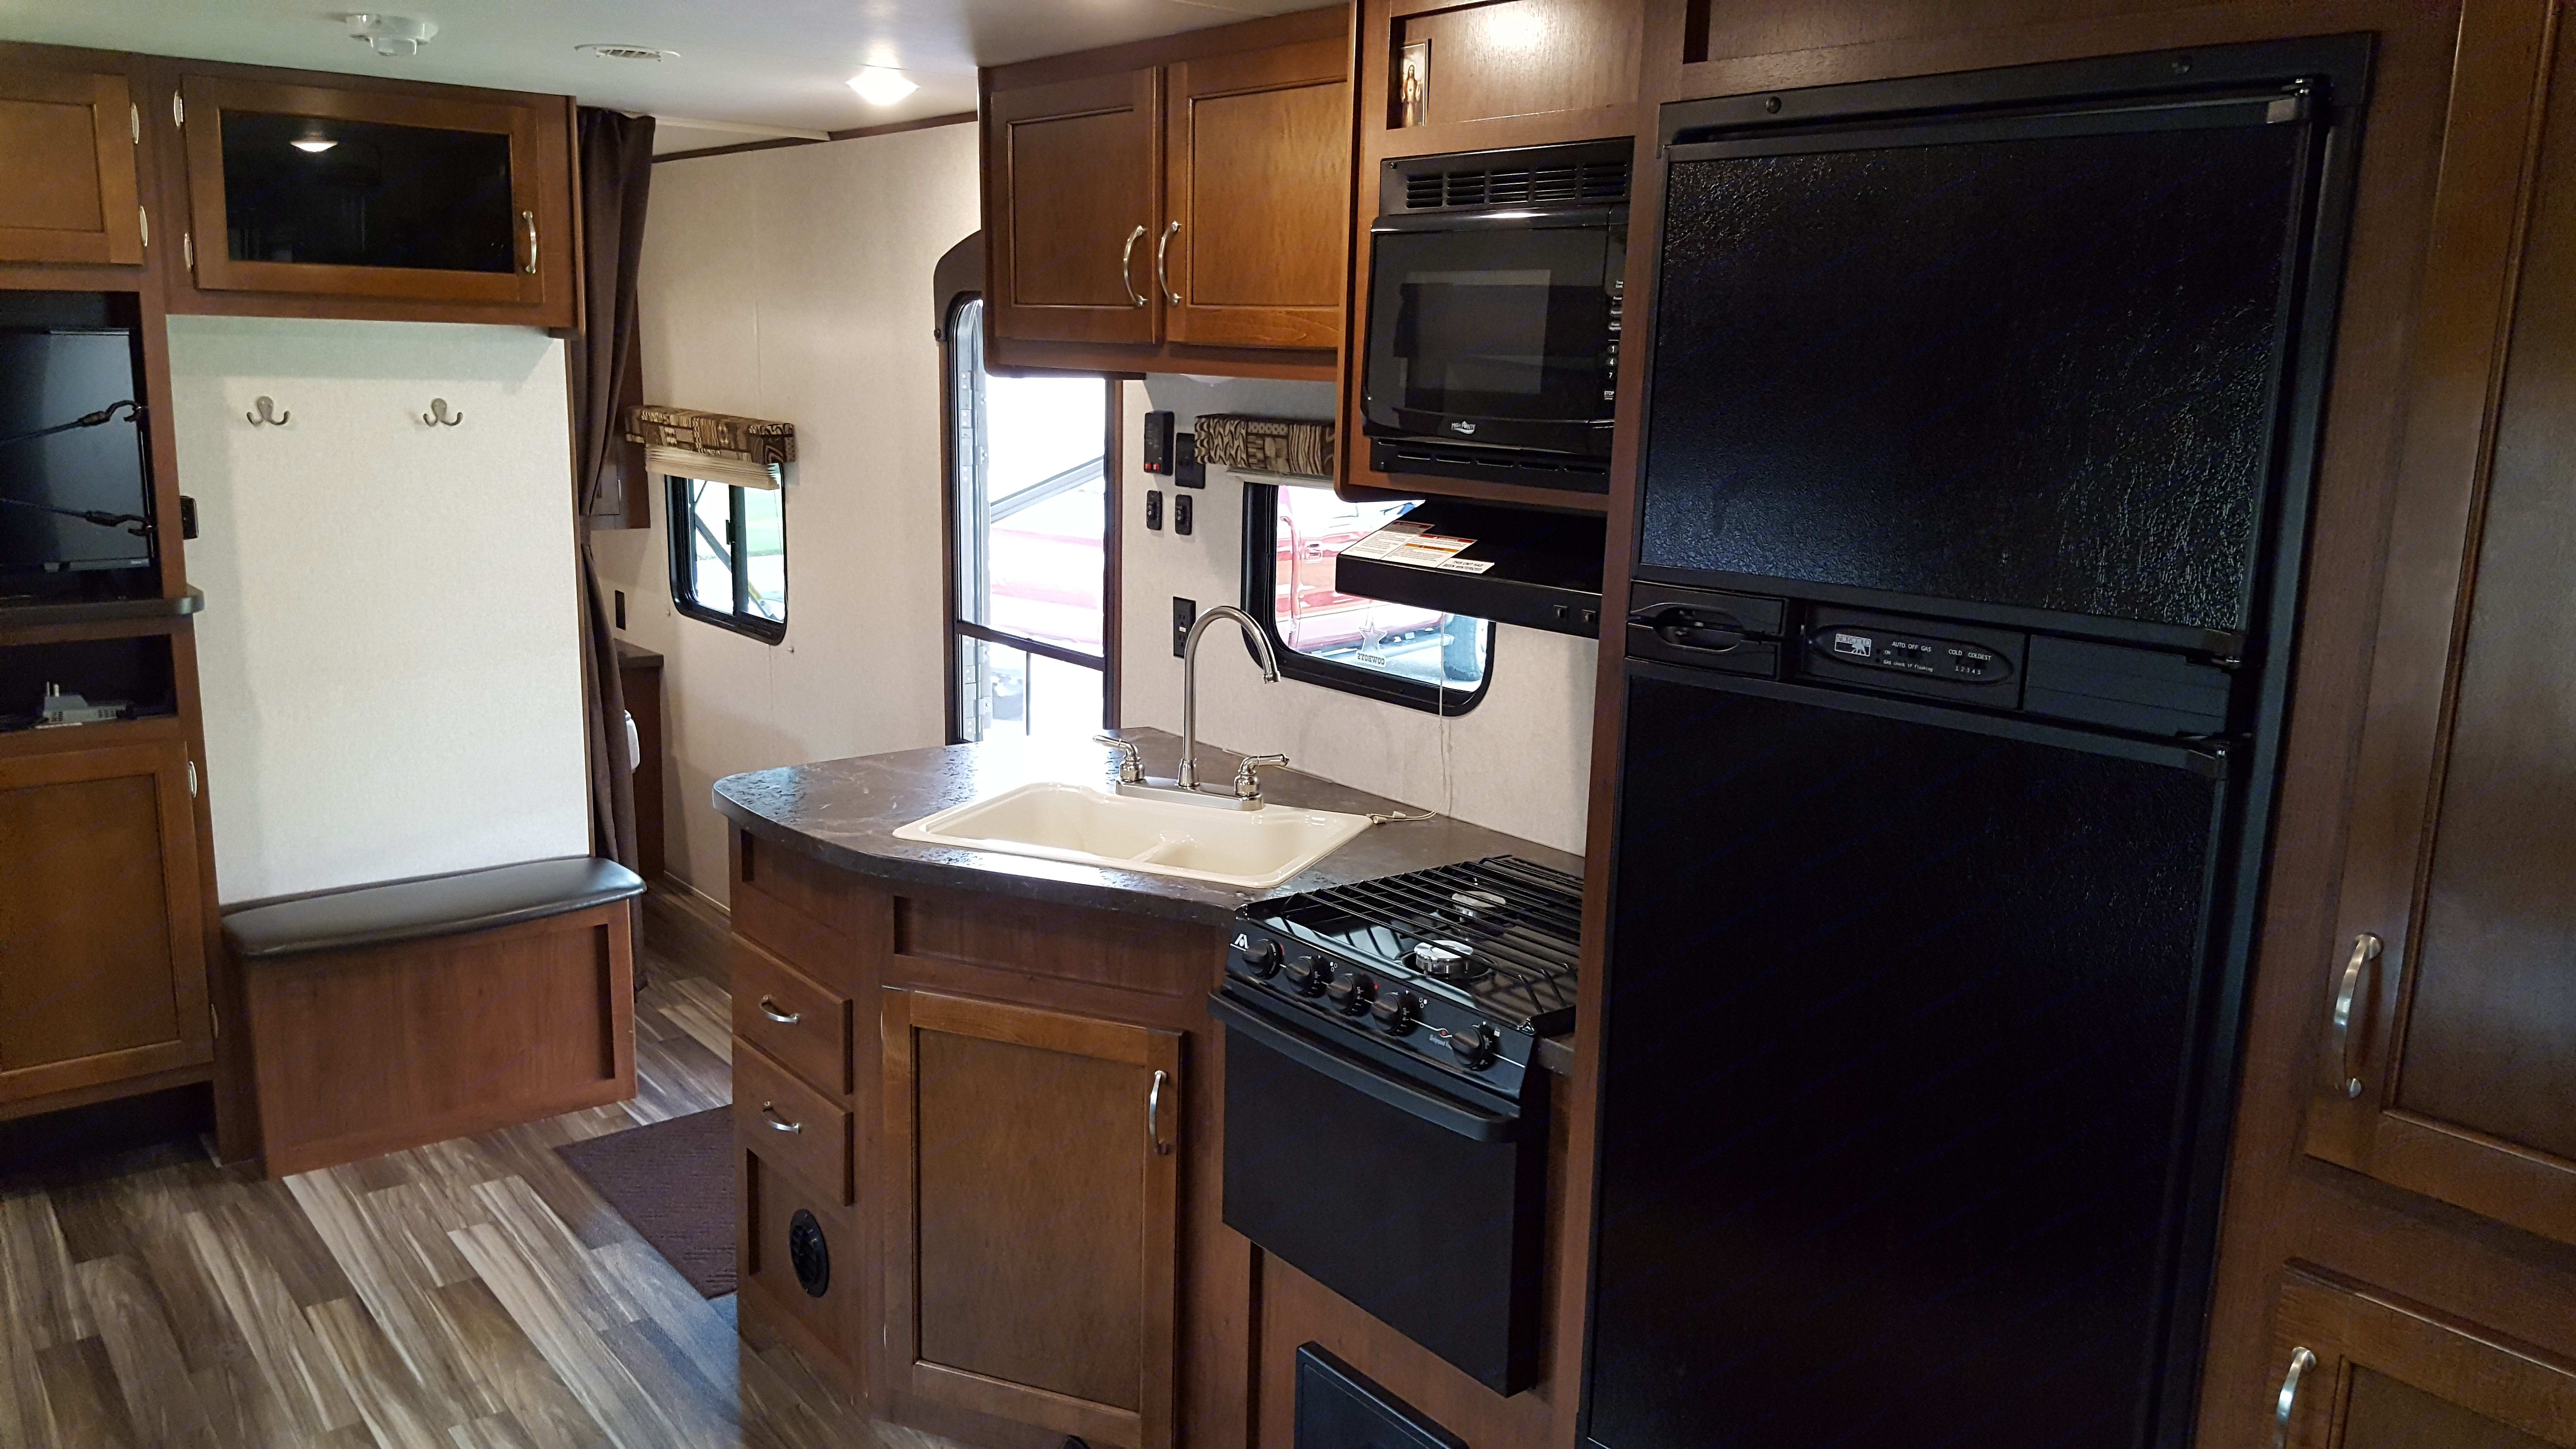 Kitchen area with access to master bedroom. Jayco Jay Flight SLX 287 BHSW 2017